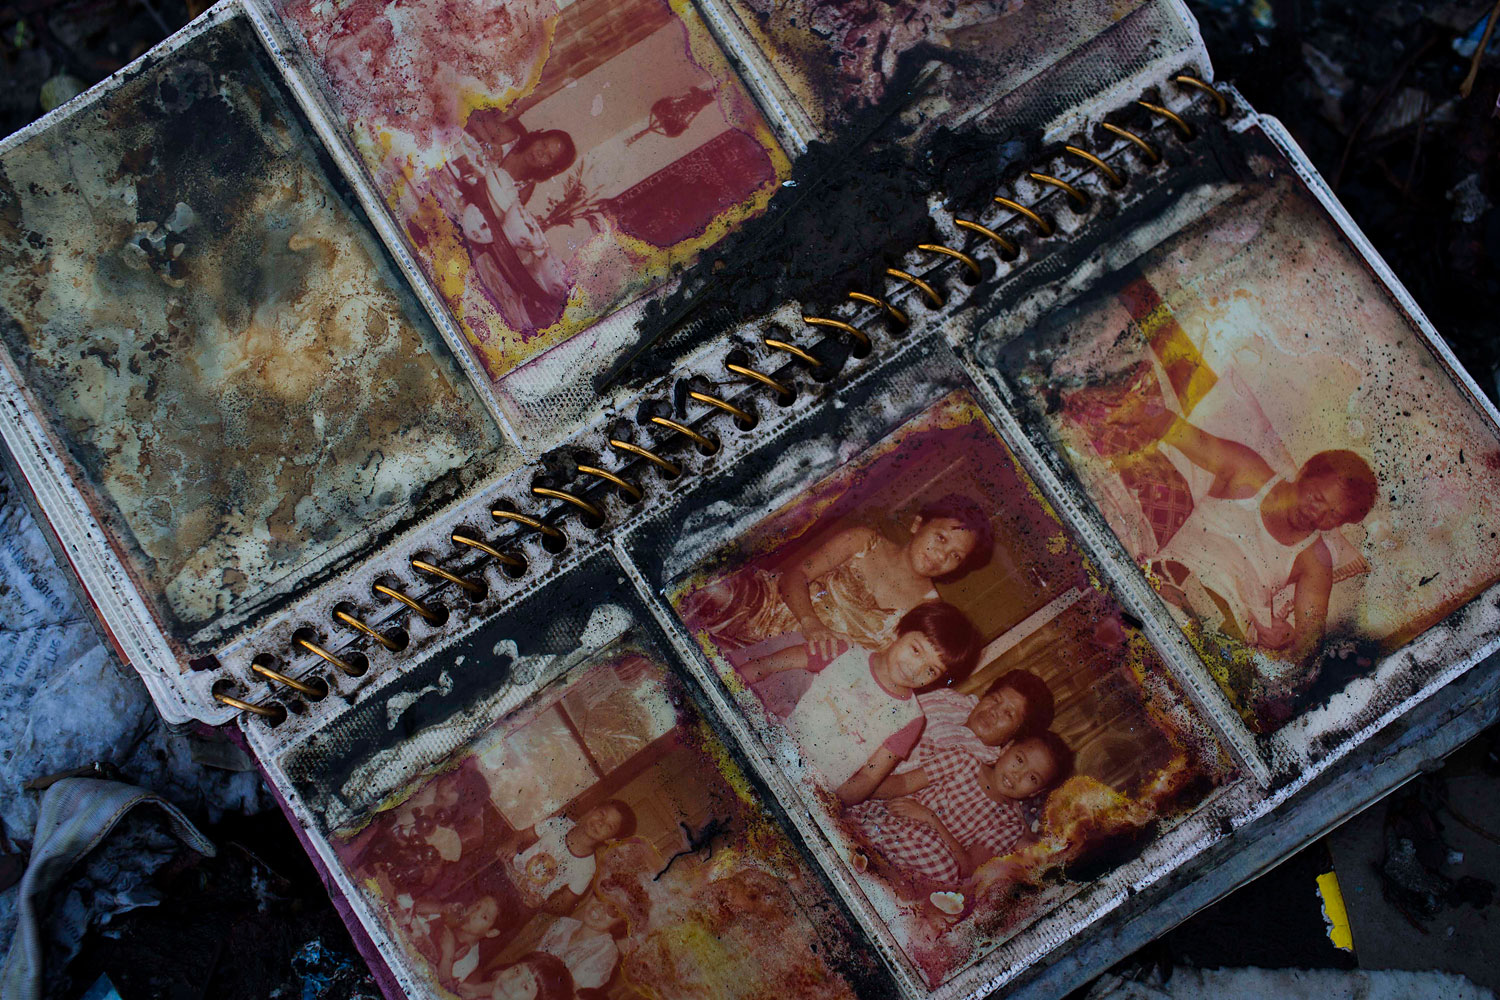 A photo album lies in the rubble in a neighborhood destroyed by Typhoon Haiyan in Tacloban, Philippines on November 22, 2013.